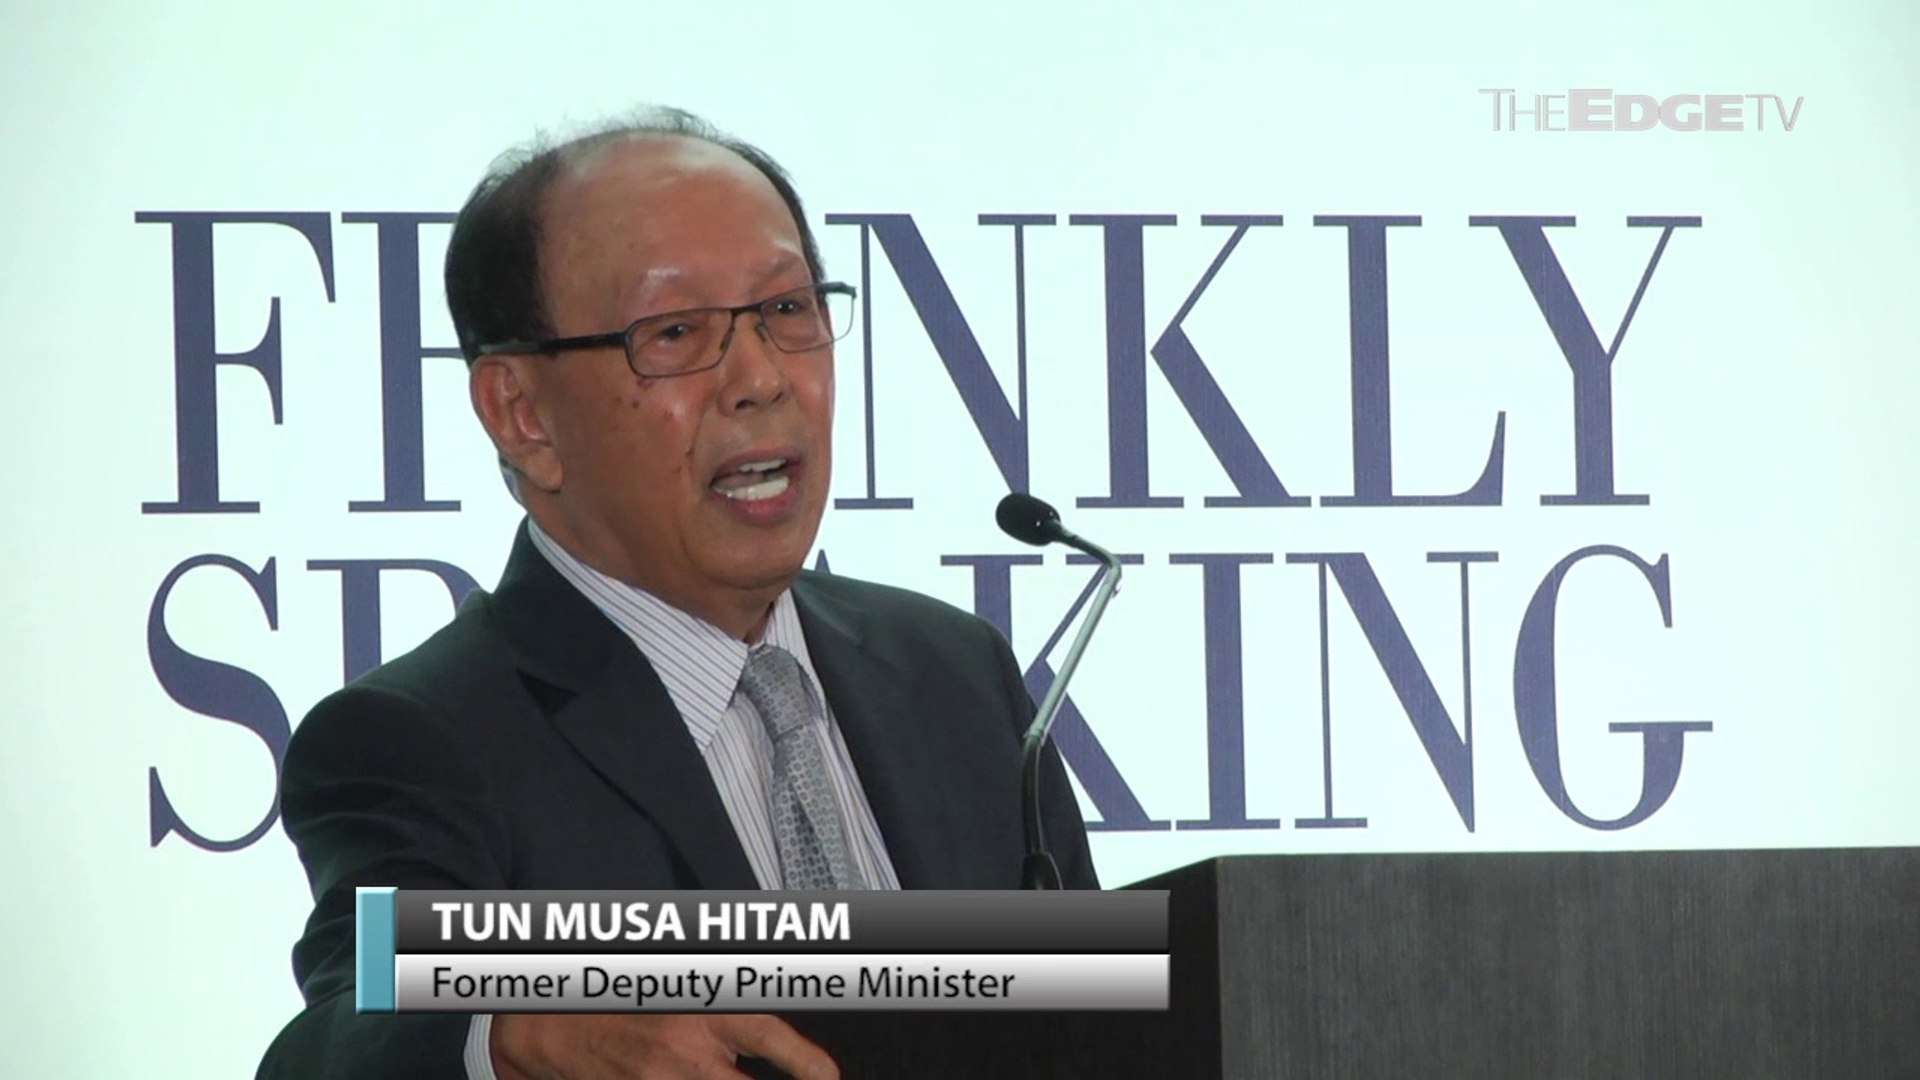 NEWS: Musa Hitam speaks frankly about life and politics in new book